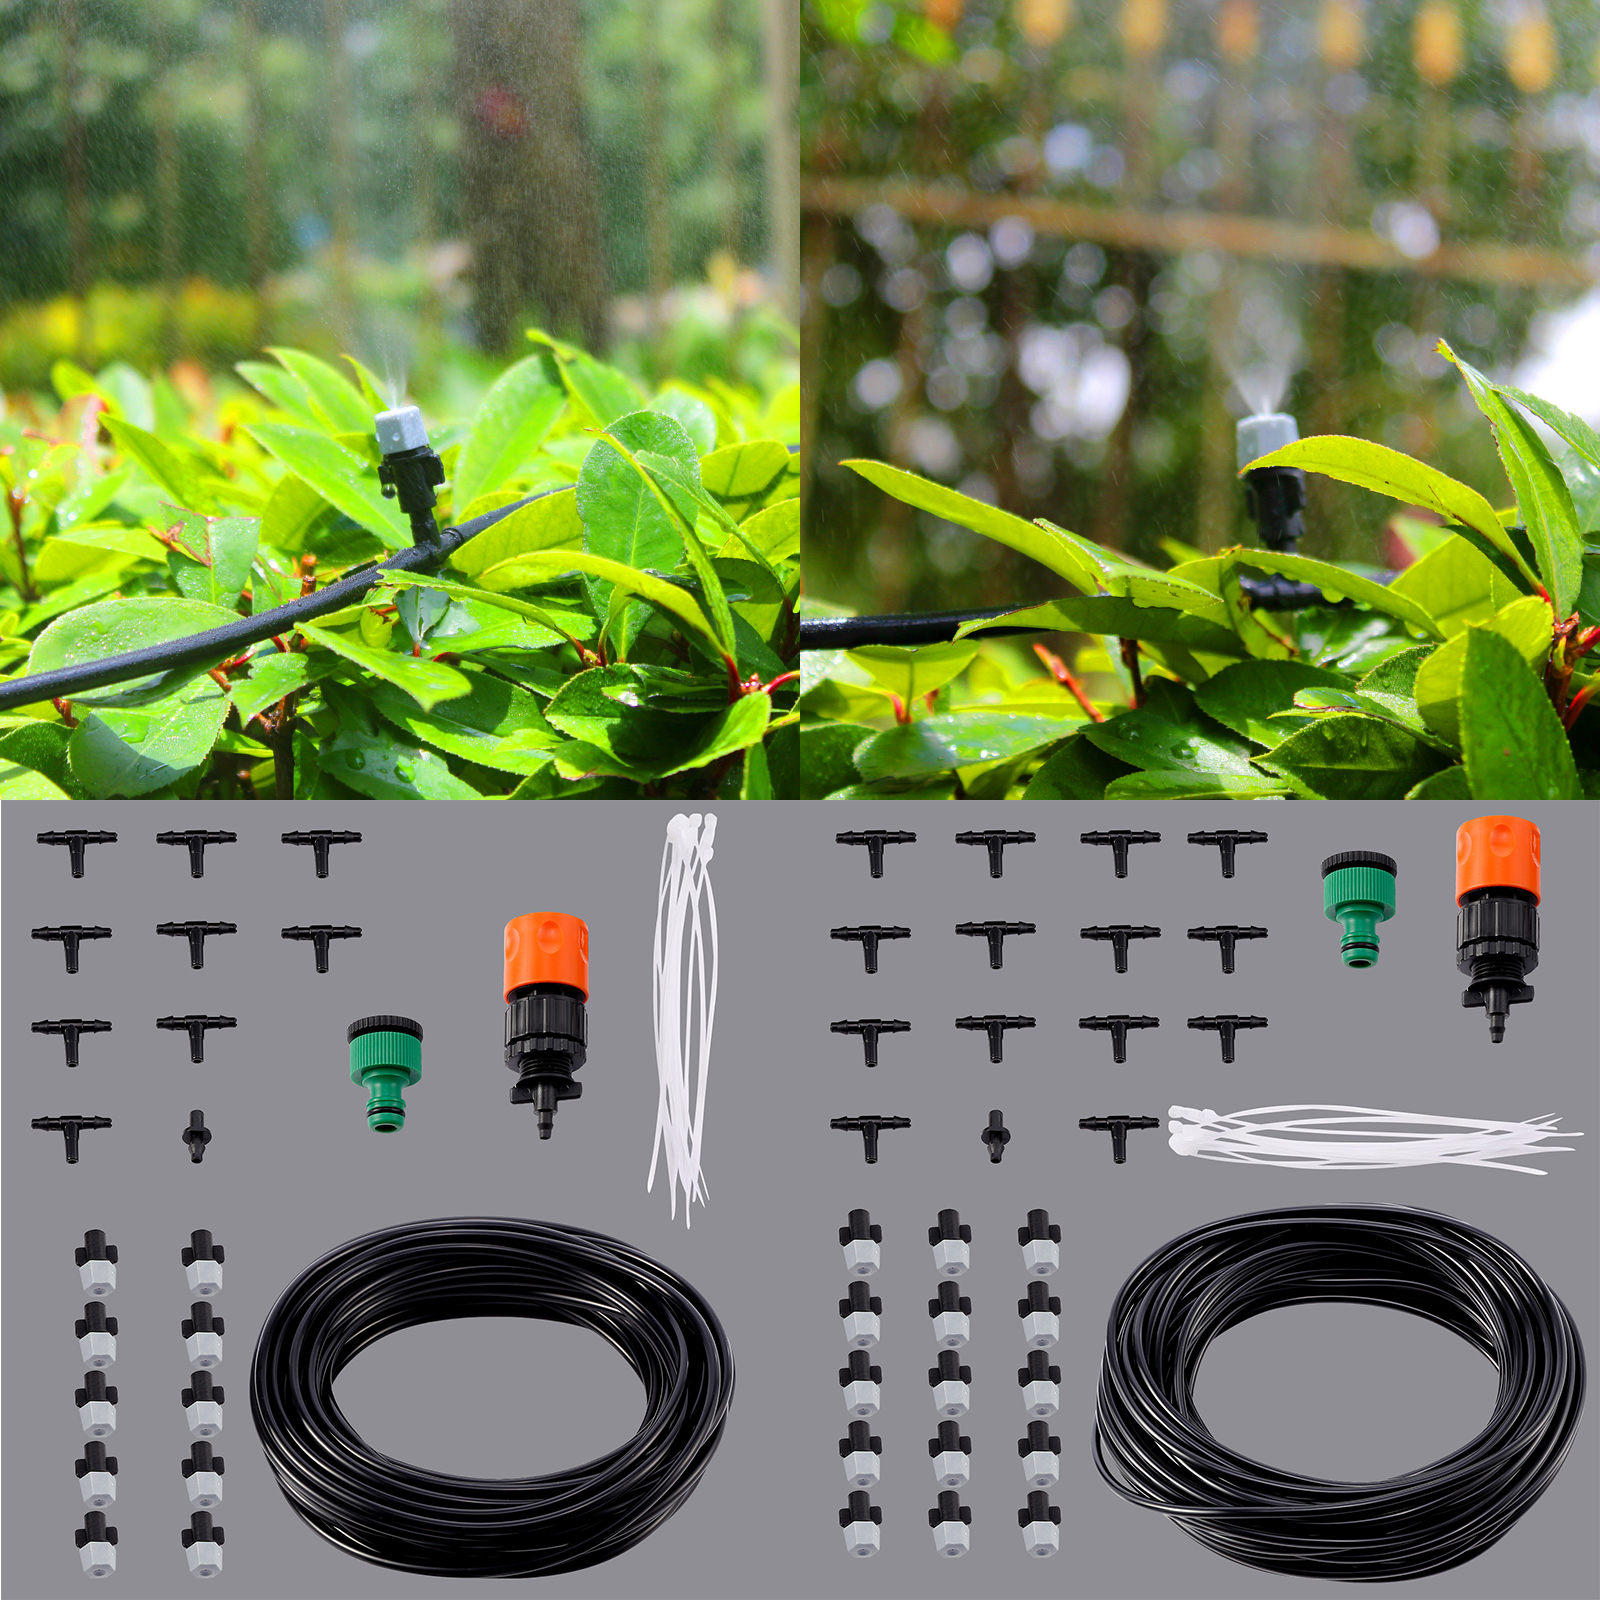 micro drip irrigation system plant self watering garden hose kit